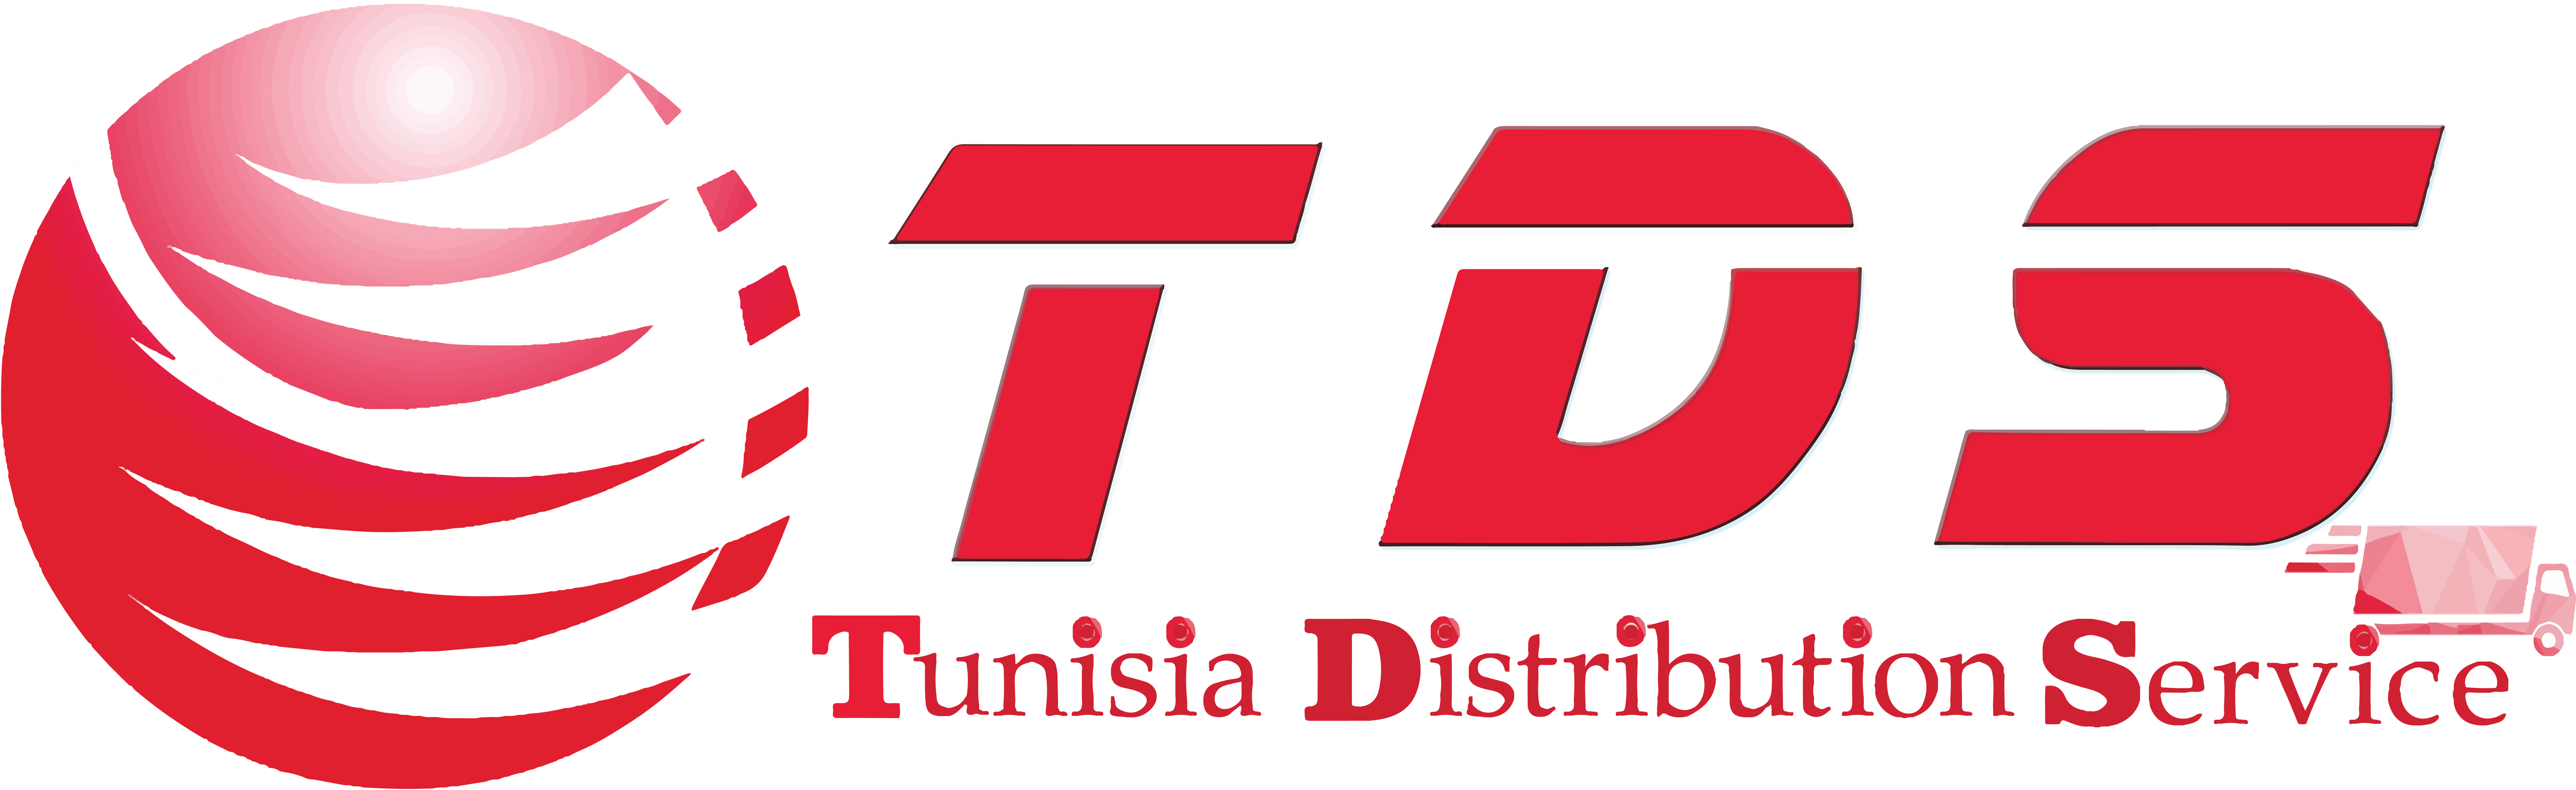 TUNISIA DISTRIBUTION SERVICES